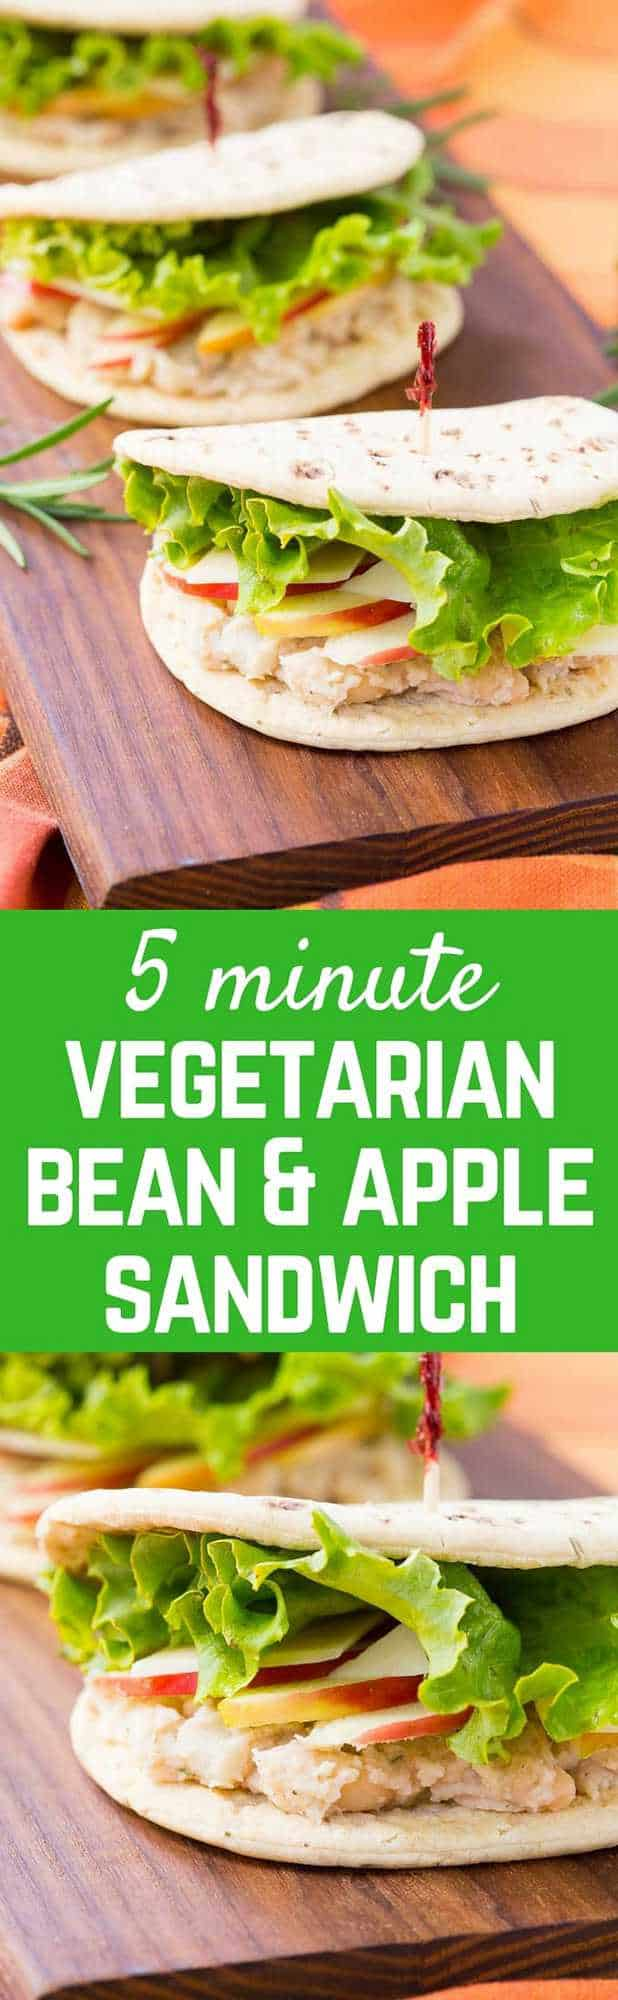 This bean Sandwich with Rosemary, Apple, and Parmesan is the perfect meatless lunch! You'll love the creamy beans with the fresh, crisp bite of the apple. Get the easy 5 minute vegetarian recipe on RachelCooks.com!